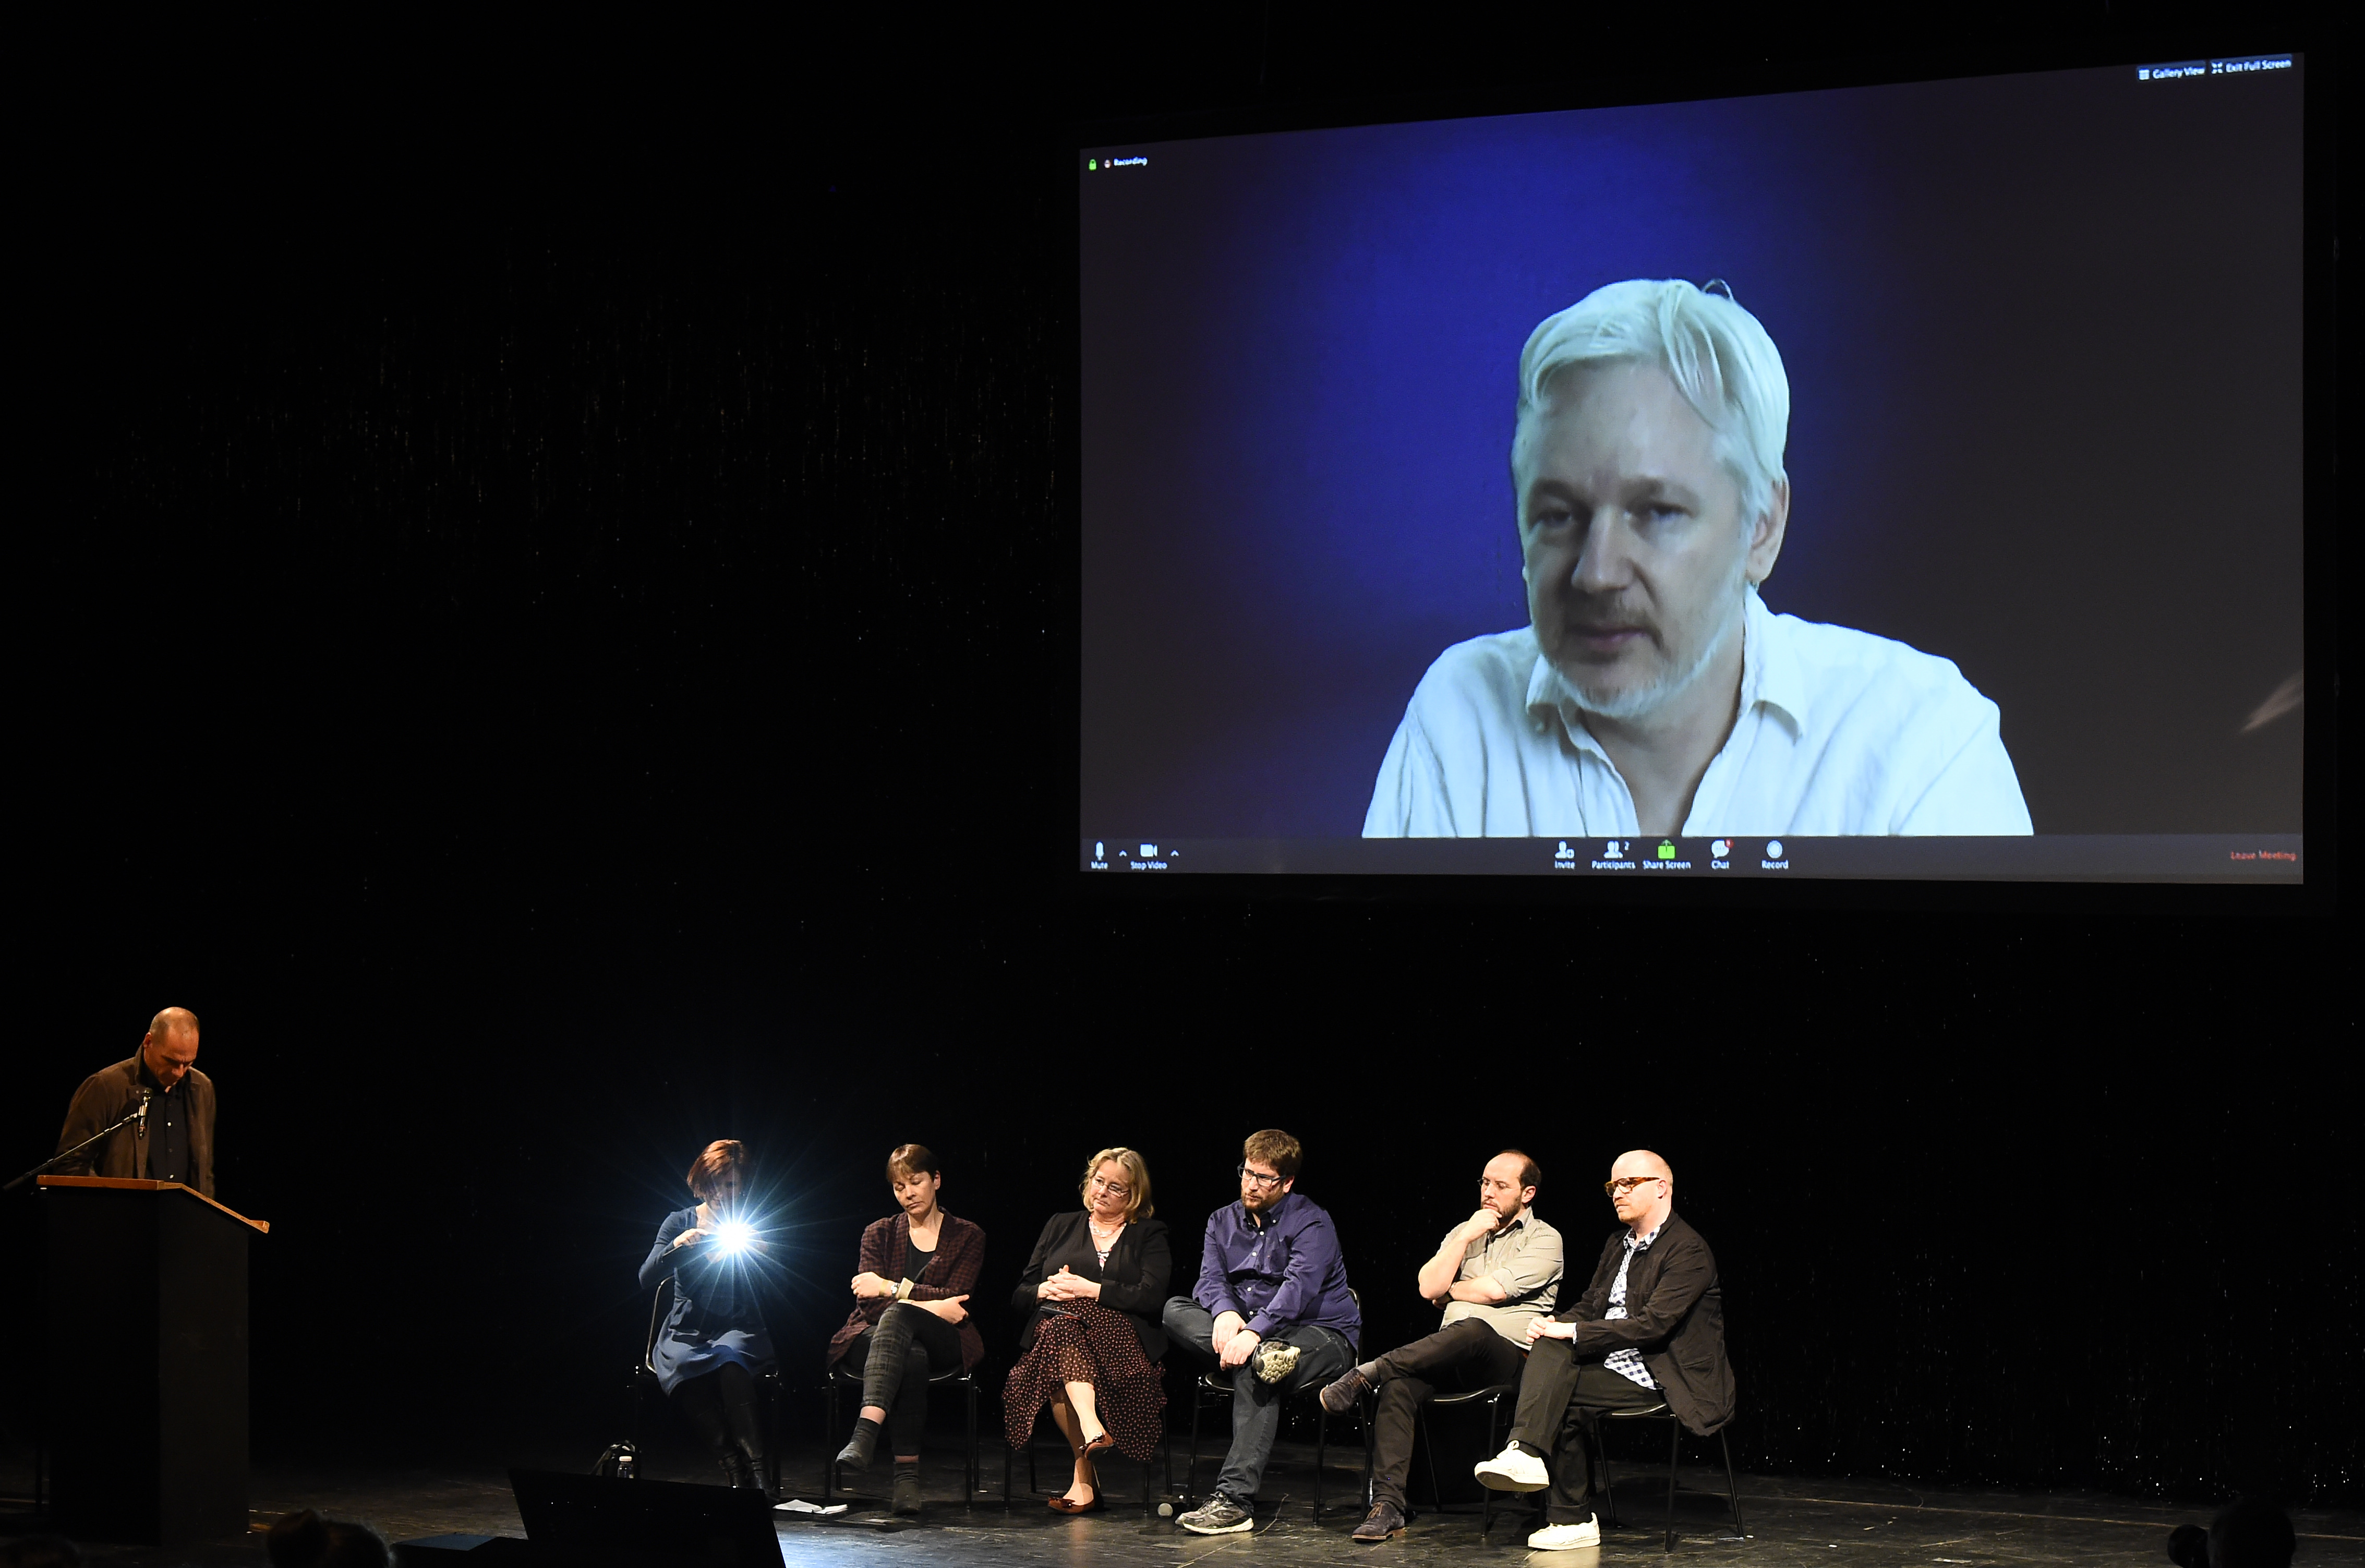 Greek former Finance Minister Yanis Varoufakis and other politicians listen to WikiLeaks founder Julian Assange speaking on a screen during an event to mark the official launch of the Democracy in Europe Movement (DiEM) in Berlin on February 9, 2016. (Photo: TOBIAS SCHWARZ/AFP/Getty Images)